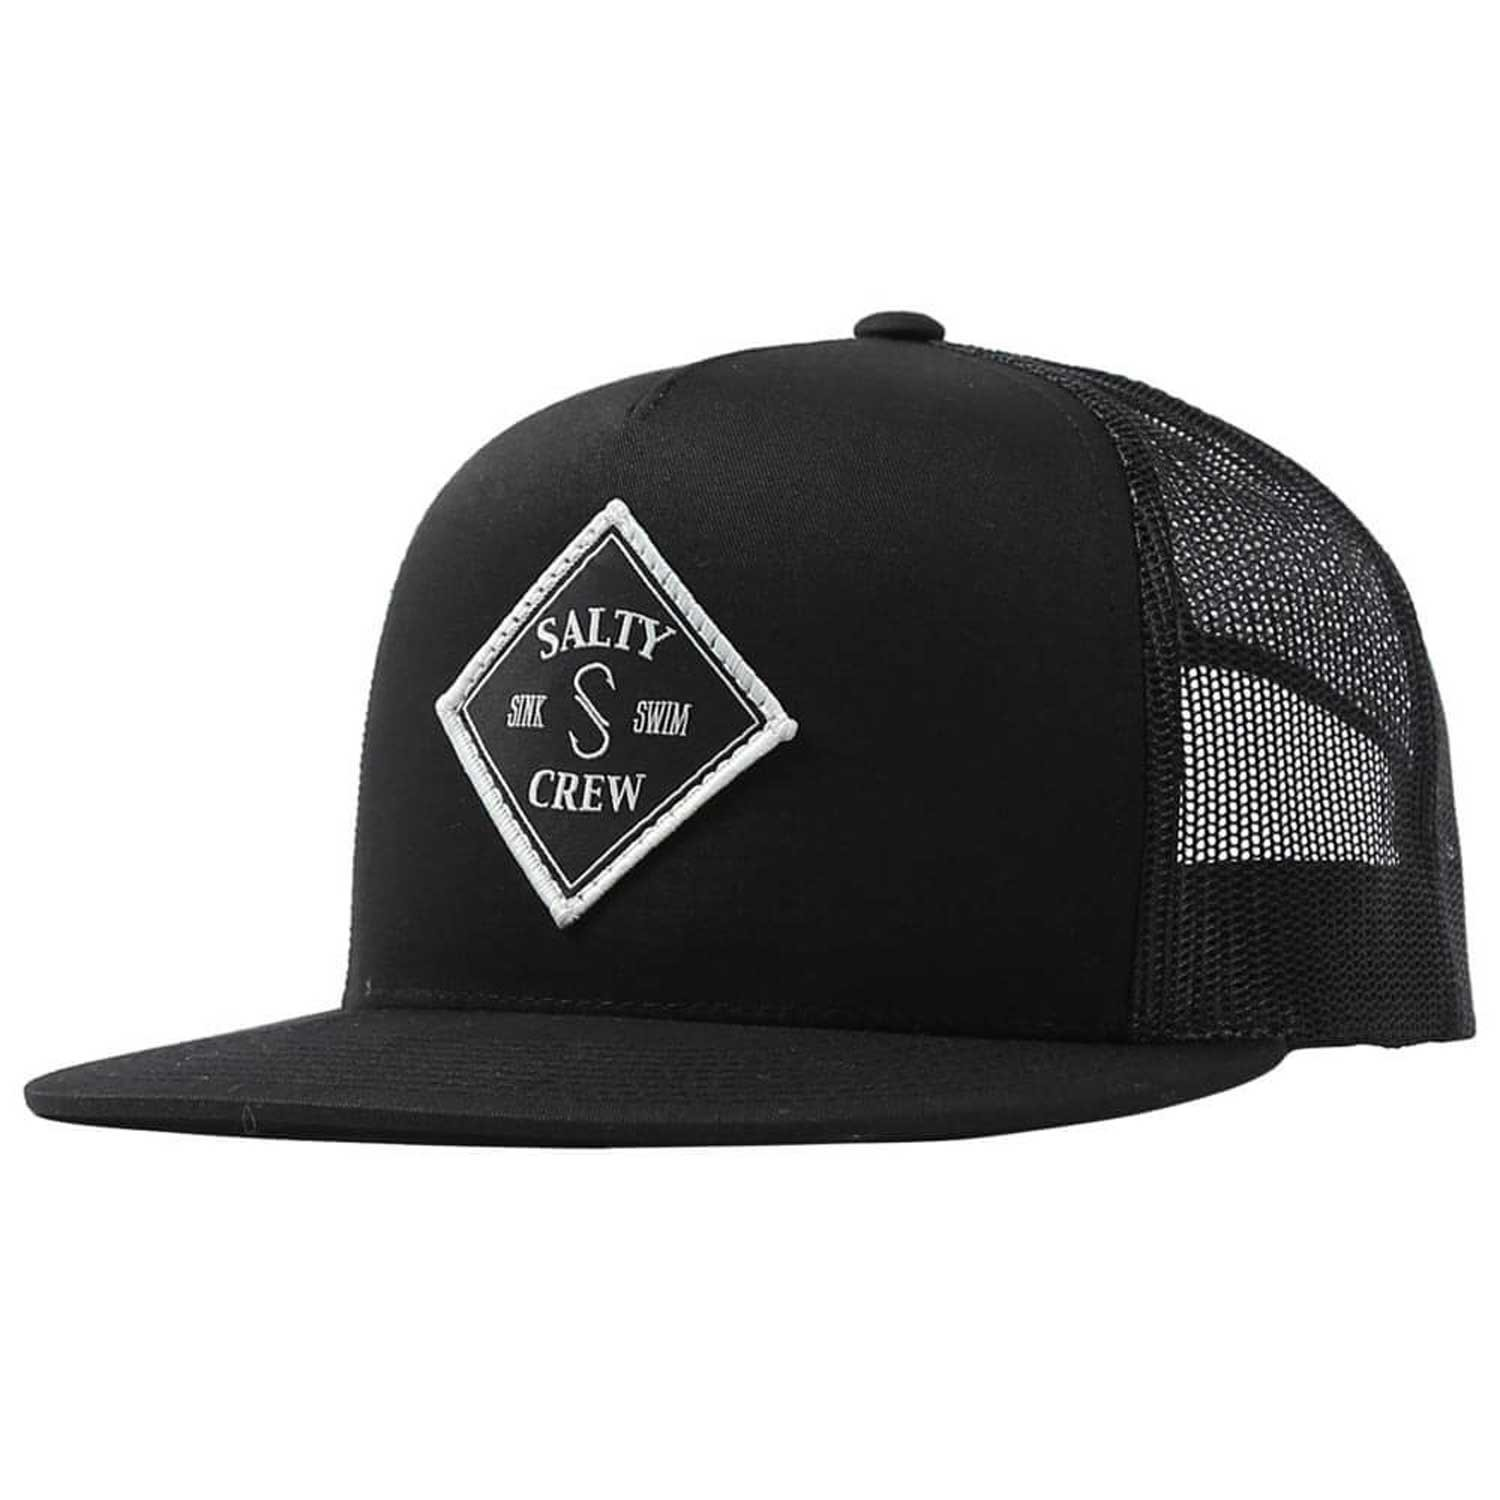 reputable site 4f5db 6c46c Salty Crew Men s Tippet Trucker Hat, Black, One Size at Amazon Men s  Clothing store